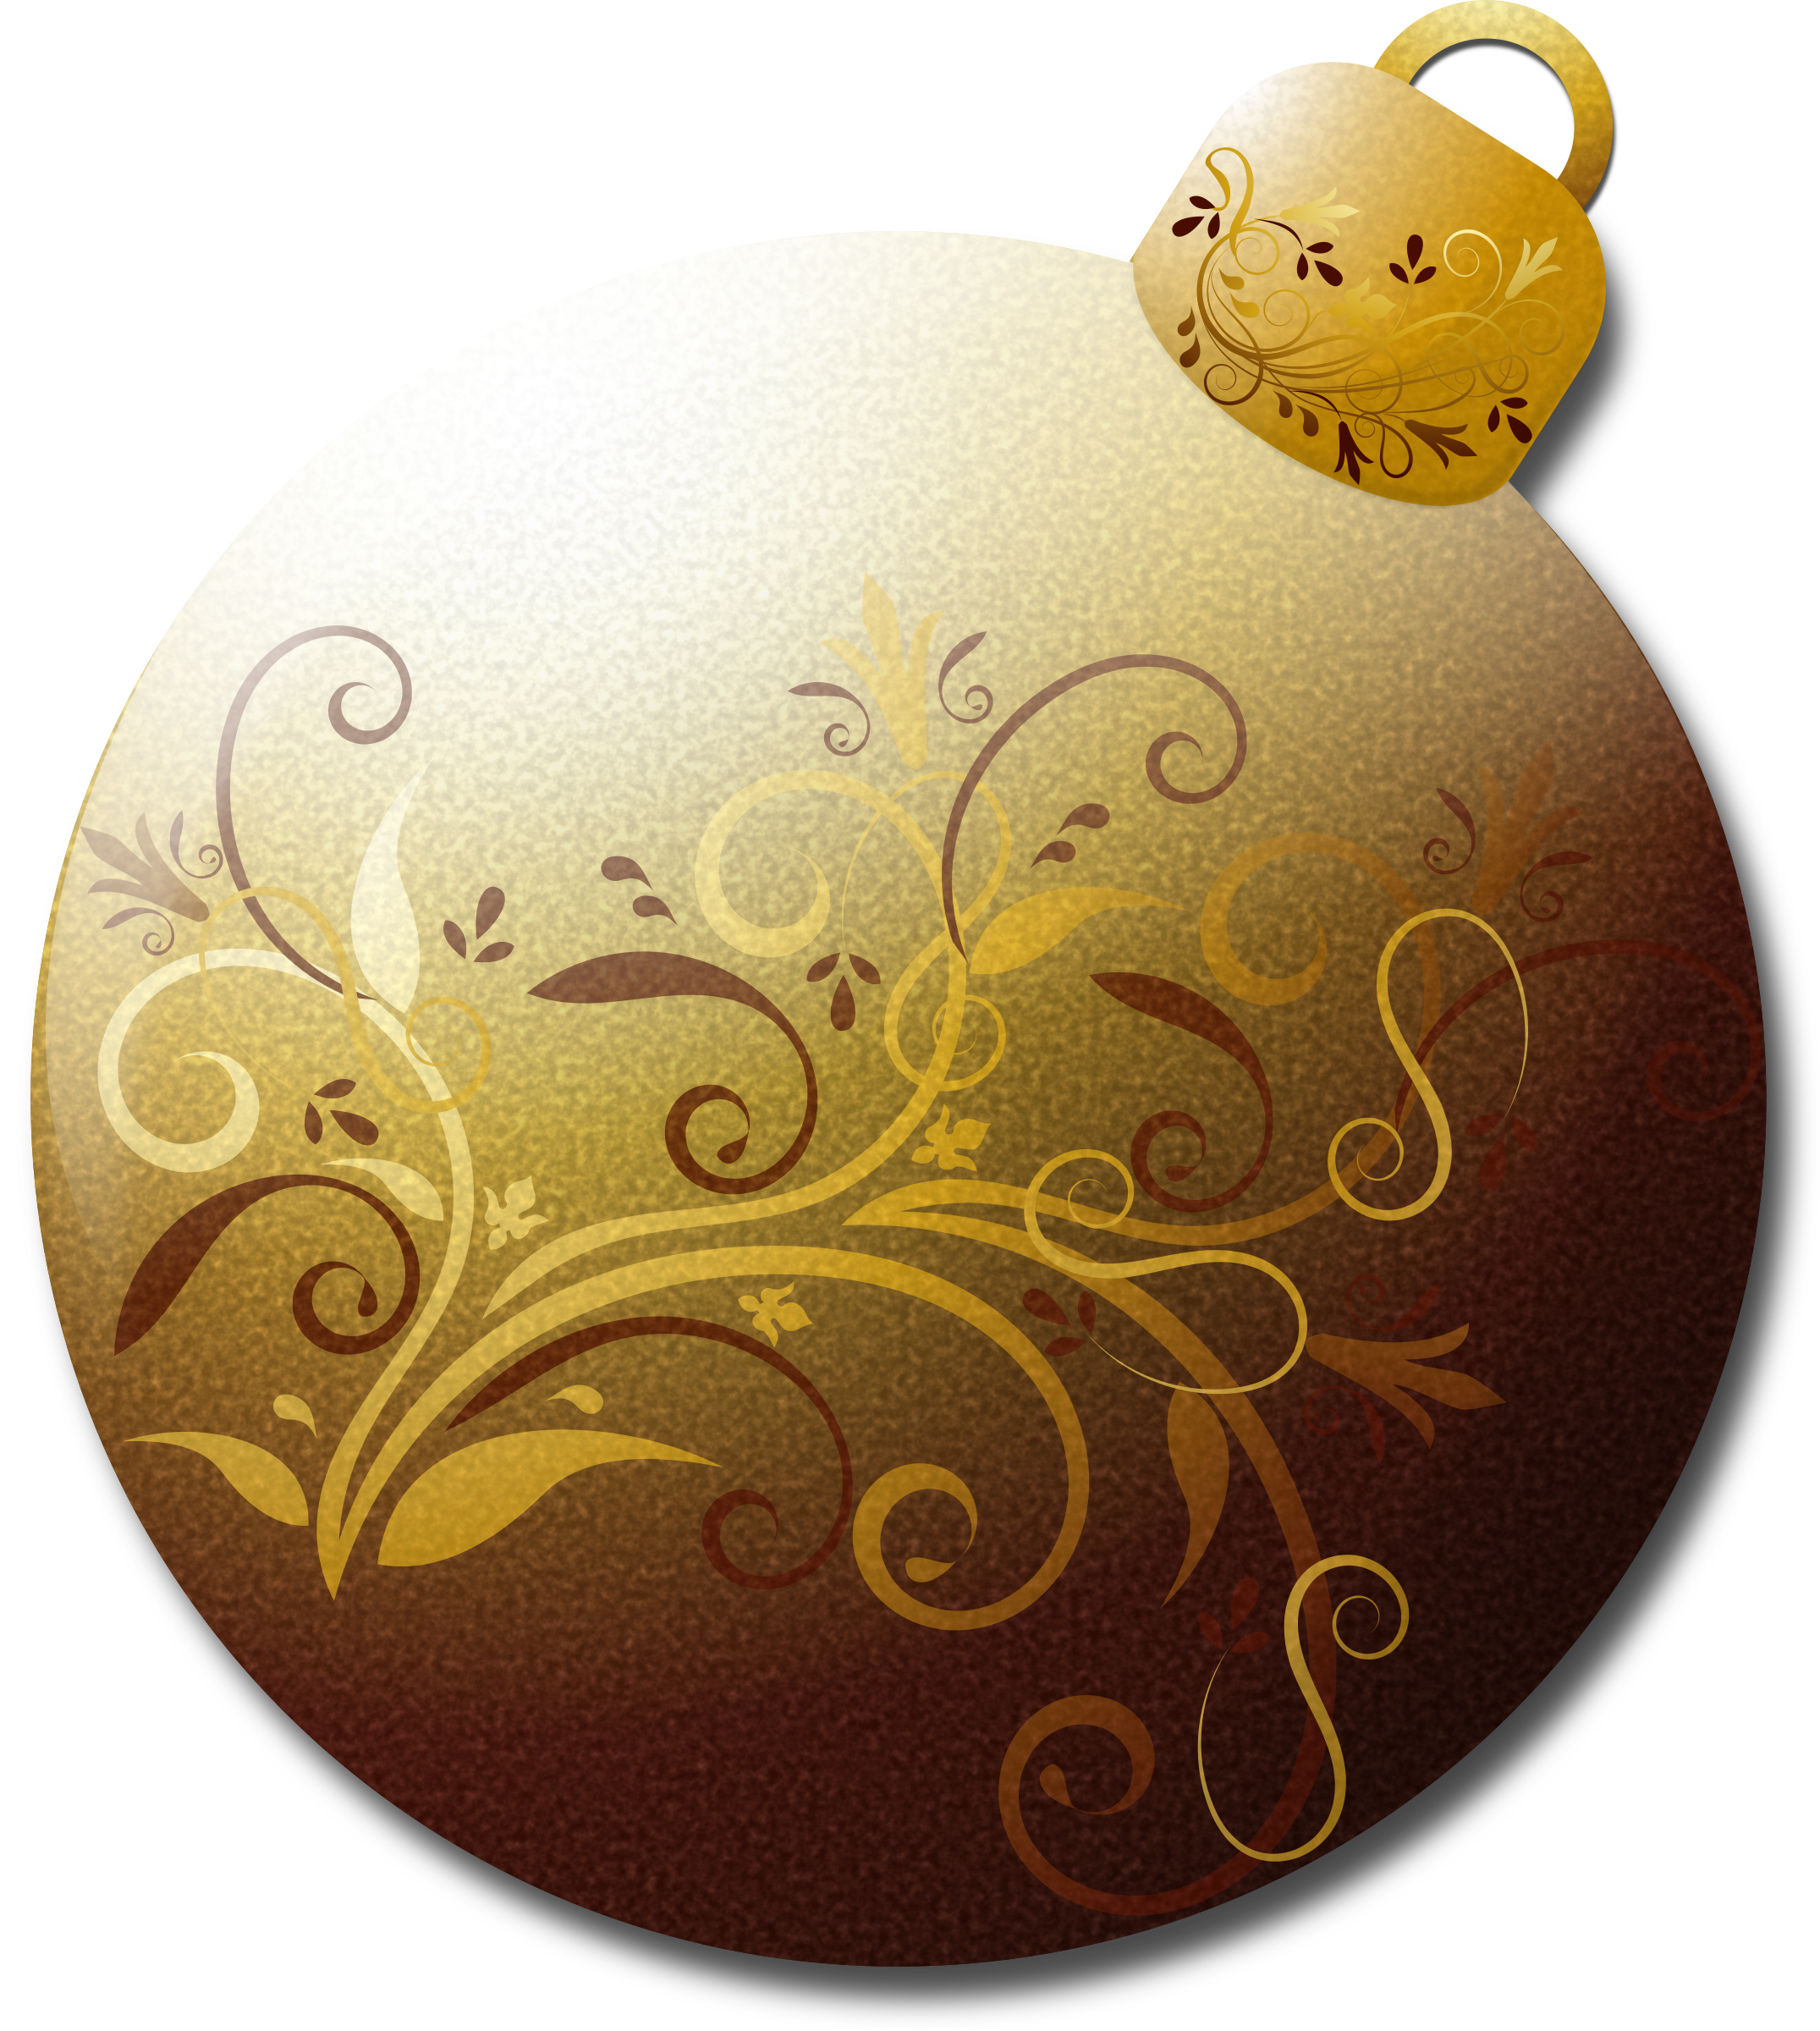 Glass clipart brown. Gold ornament big image